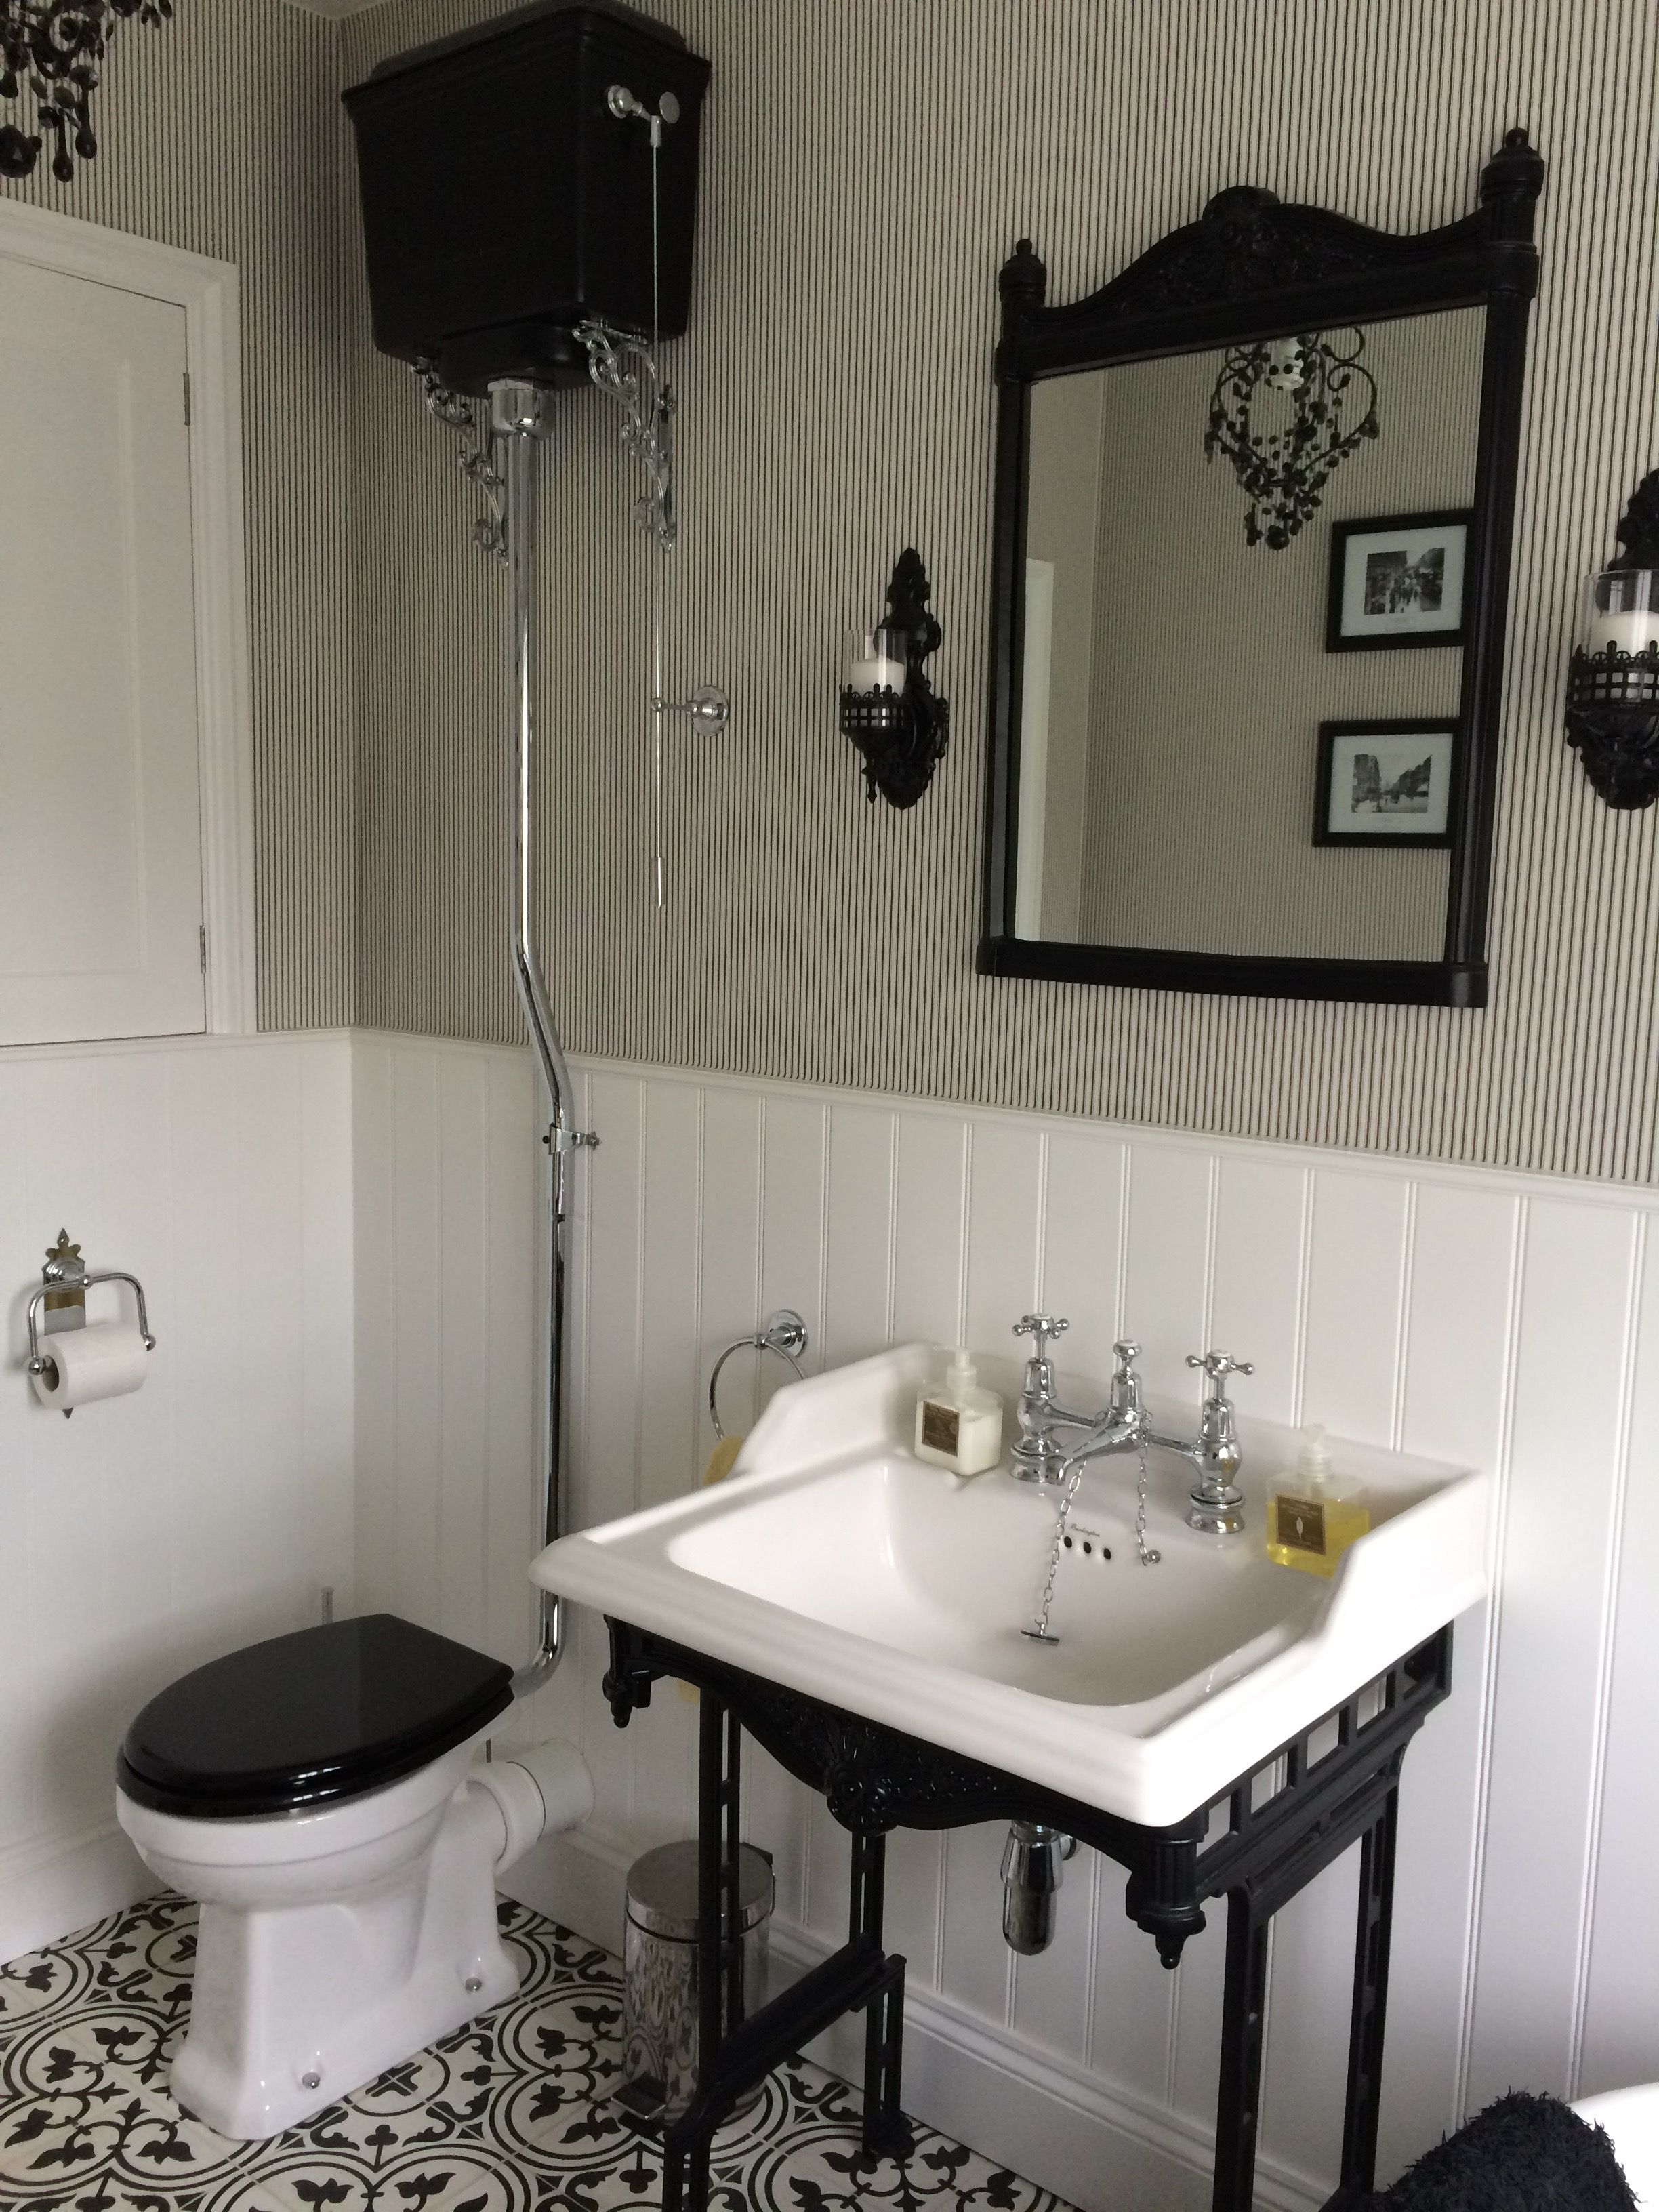 Vintage black and white bathroom ideas - Bathroom Burlington High Level Toilet Mirror Classic Washstand In Black